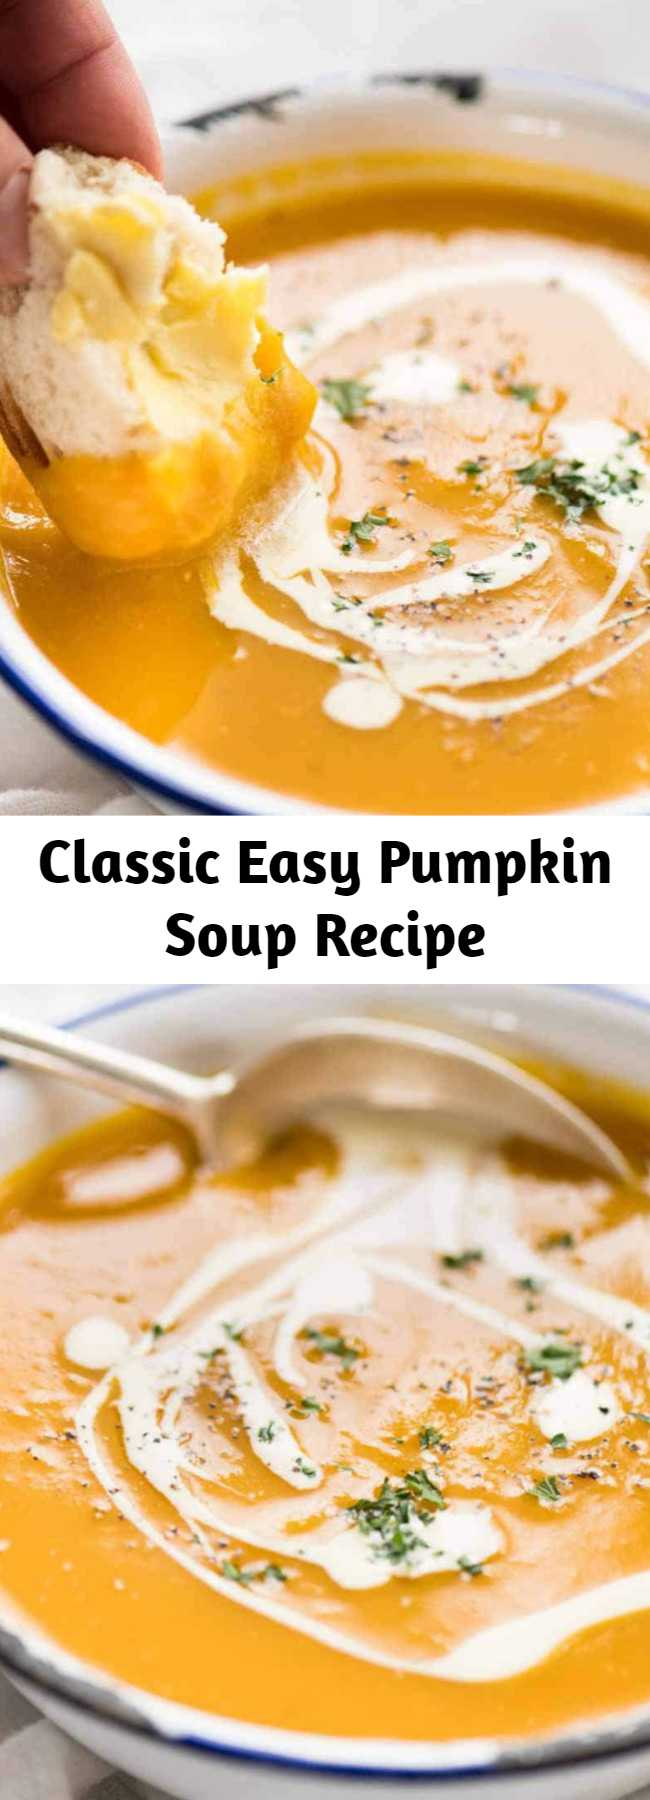 Classic Easy Pumpkin Soup Recipe - This is a classic, easy pumpkin soup made with fresh pumpkin that is very fast to make. Thick, creamy and full of flavour, this is THE pumpkin soup recipe you will make now and forever!